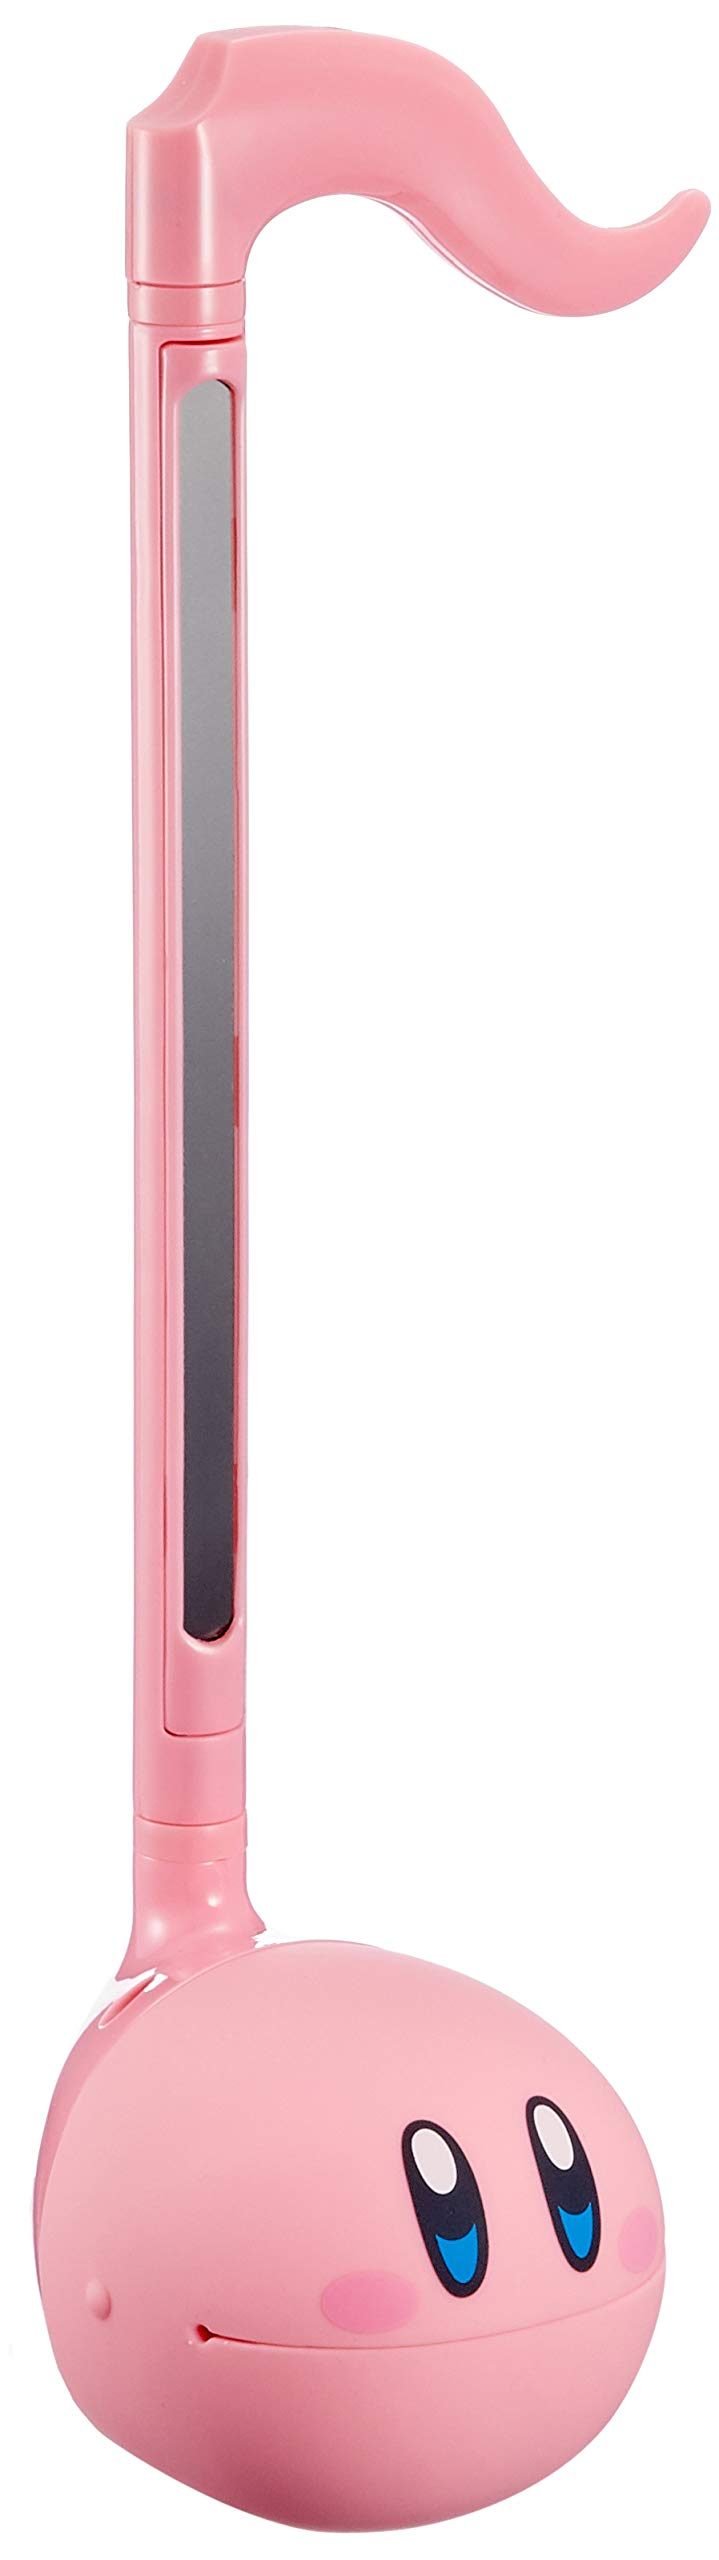 Otamatone [Kirby] Nintendo Video Game Character Japanese Electronic Musical Instrument Portable Synthesizer from Japan by Cube/Maywa Denki, Pink Hero (Japan Import) by Otamatone